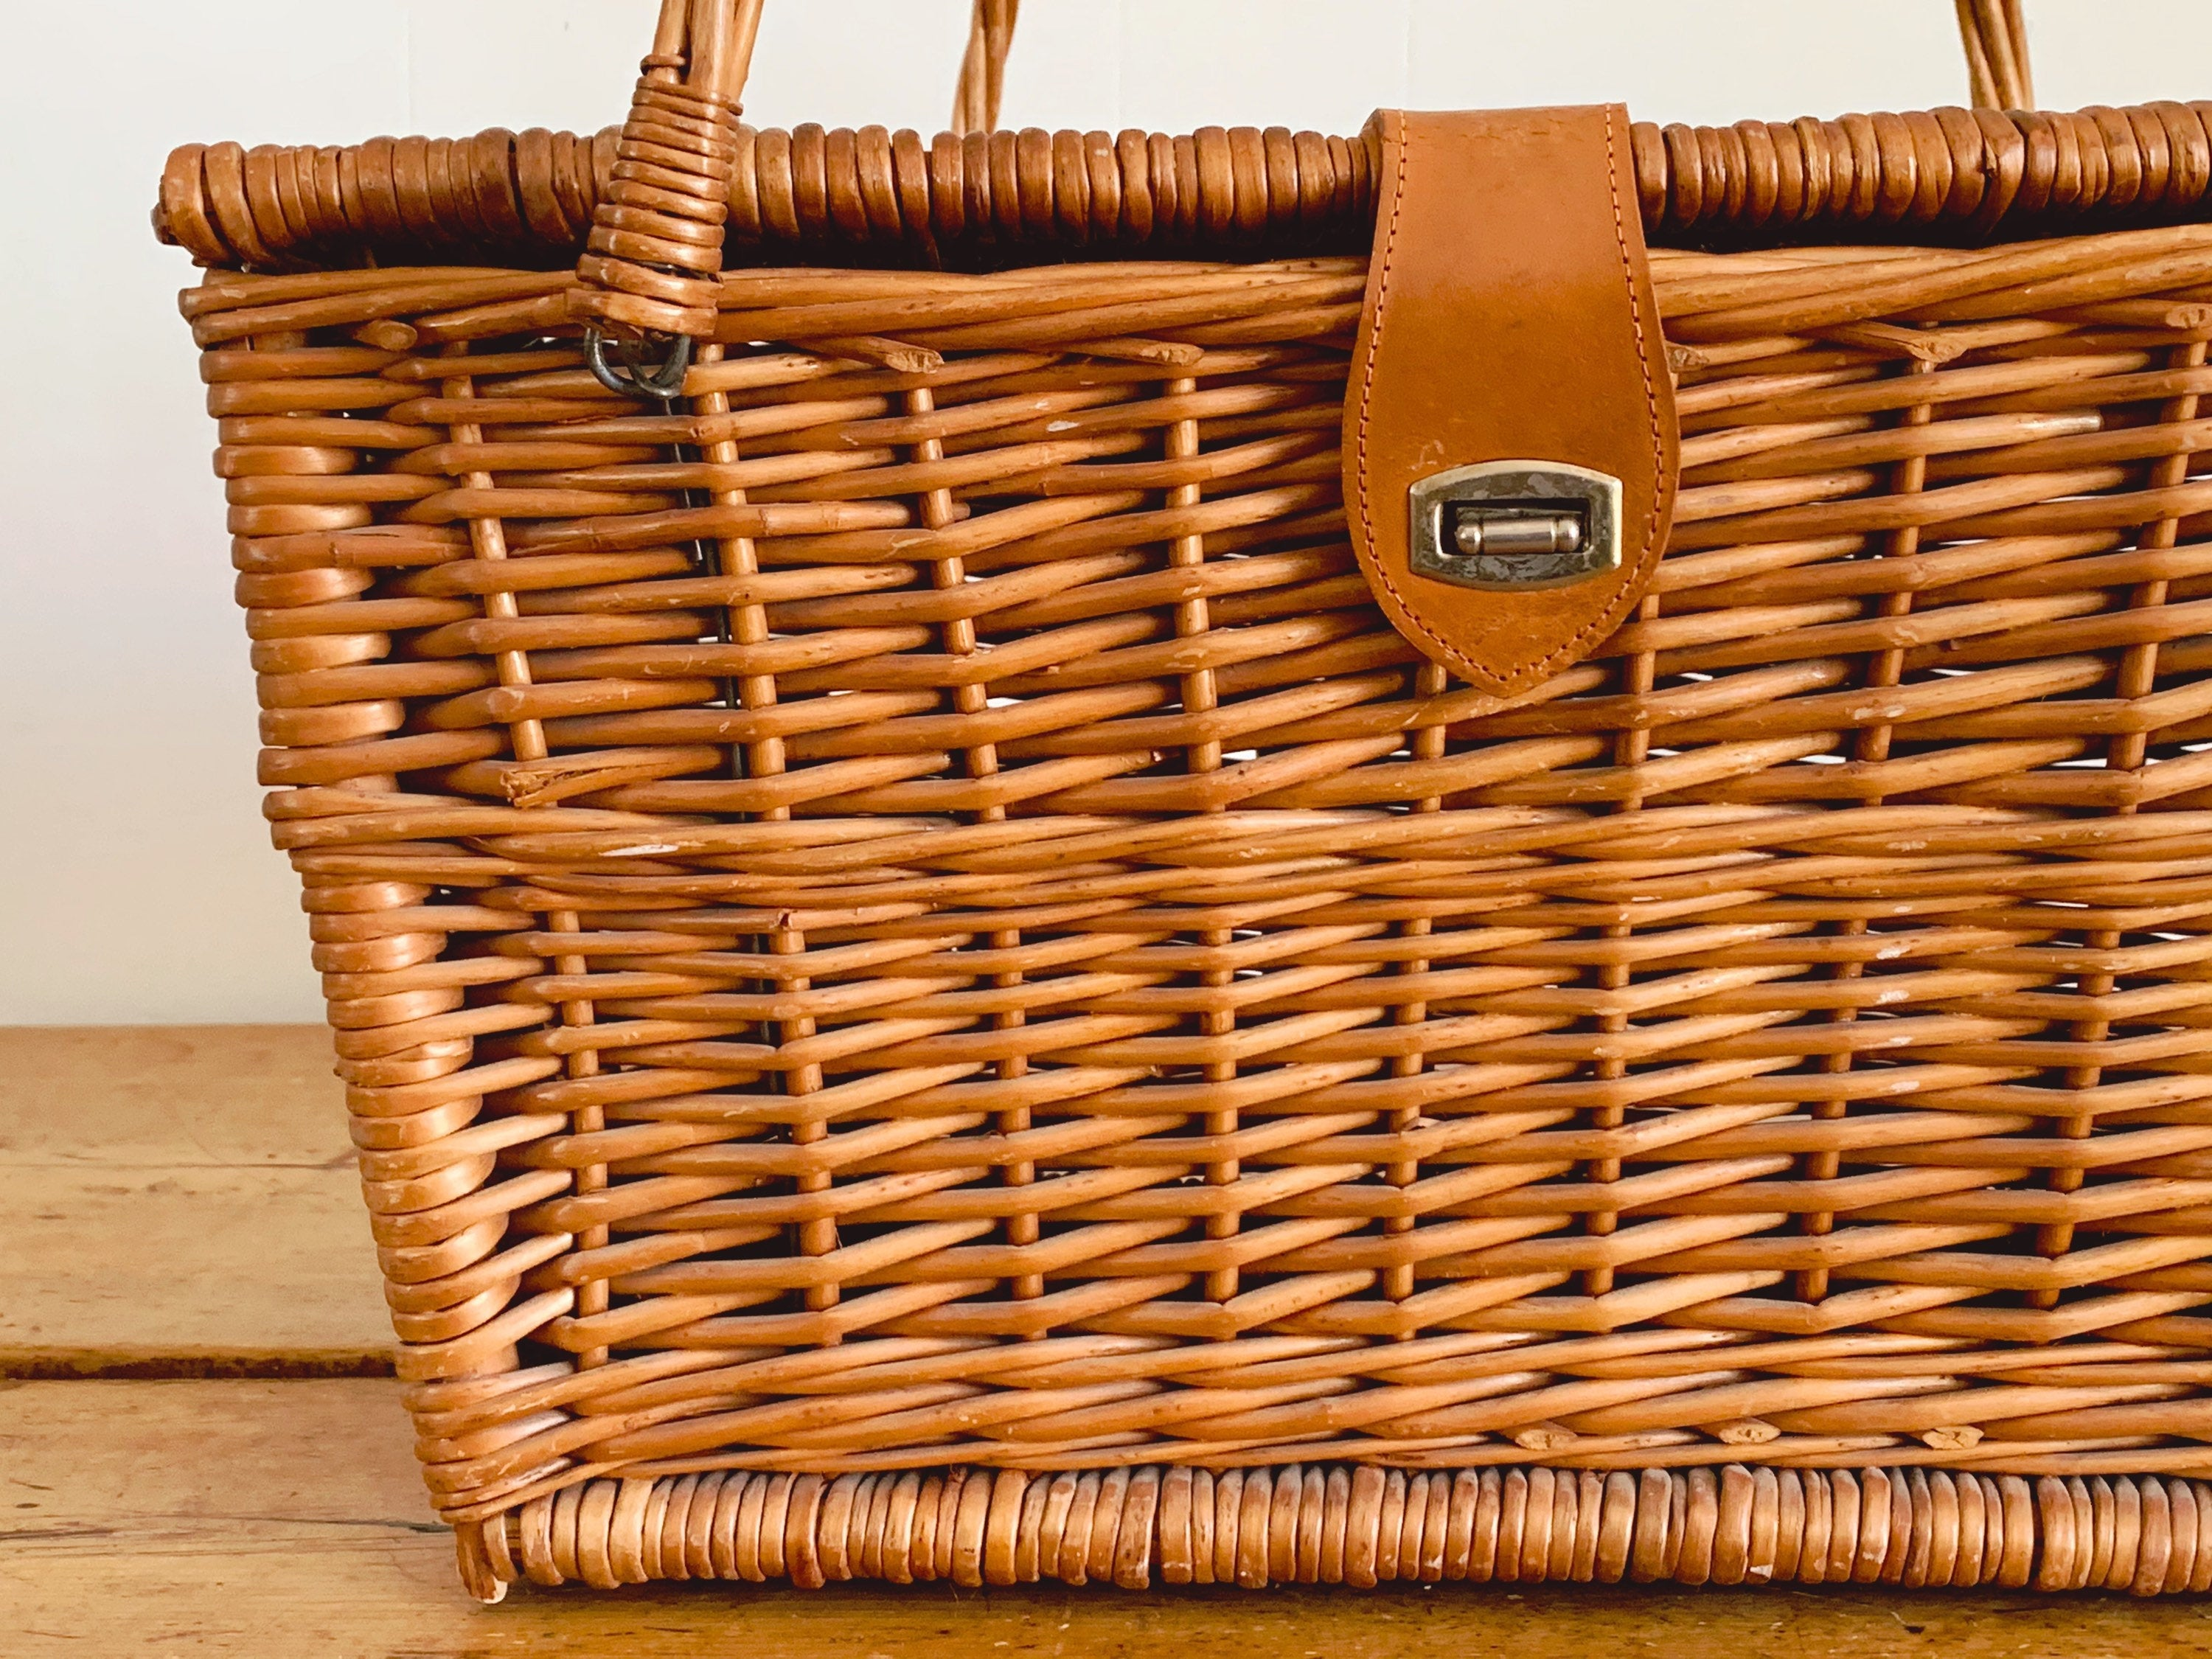 Large Vintage Woven Willow Picnic Basket | Wicker Basket Outdoor Dining | Gift for Her